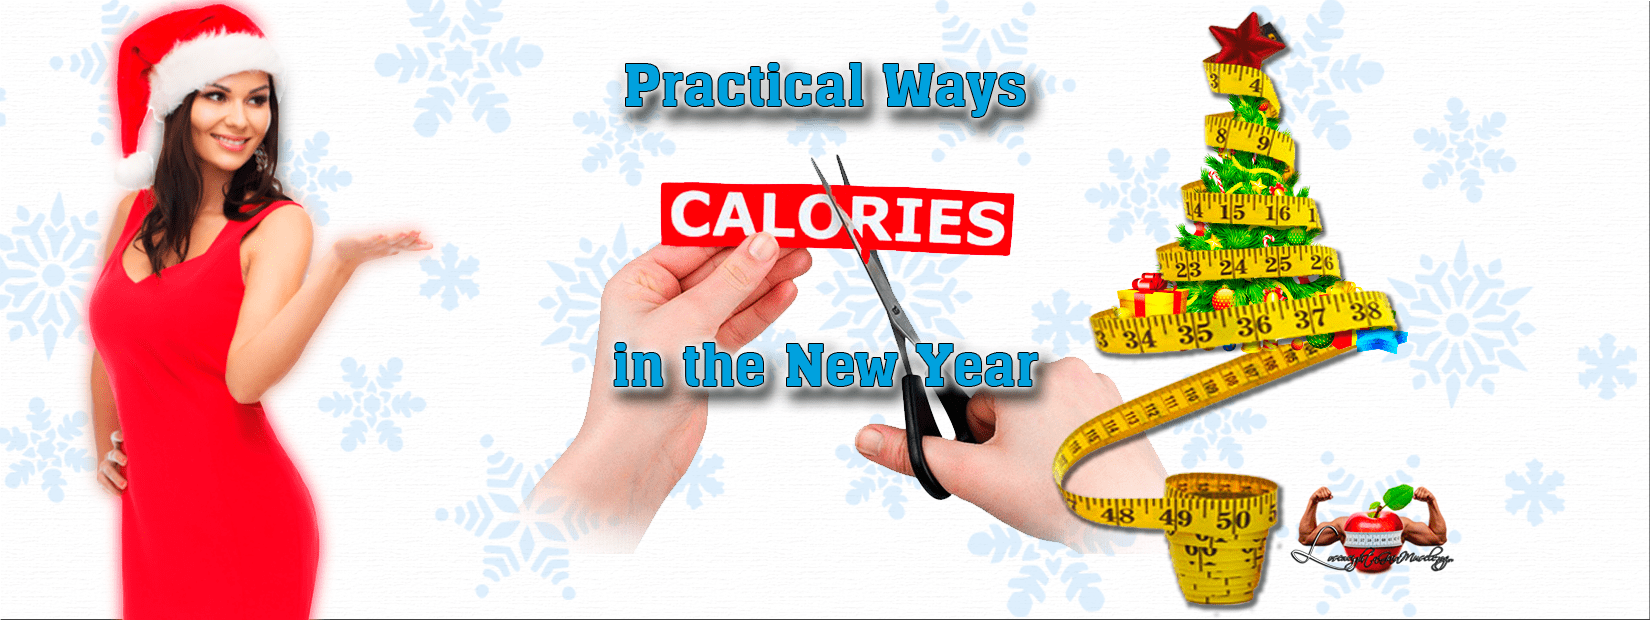 Practical Ways to Cut Calories in the New Year